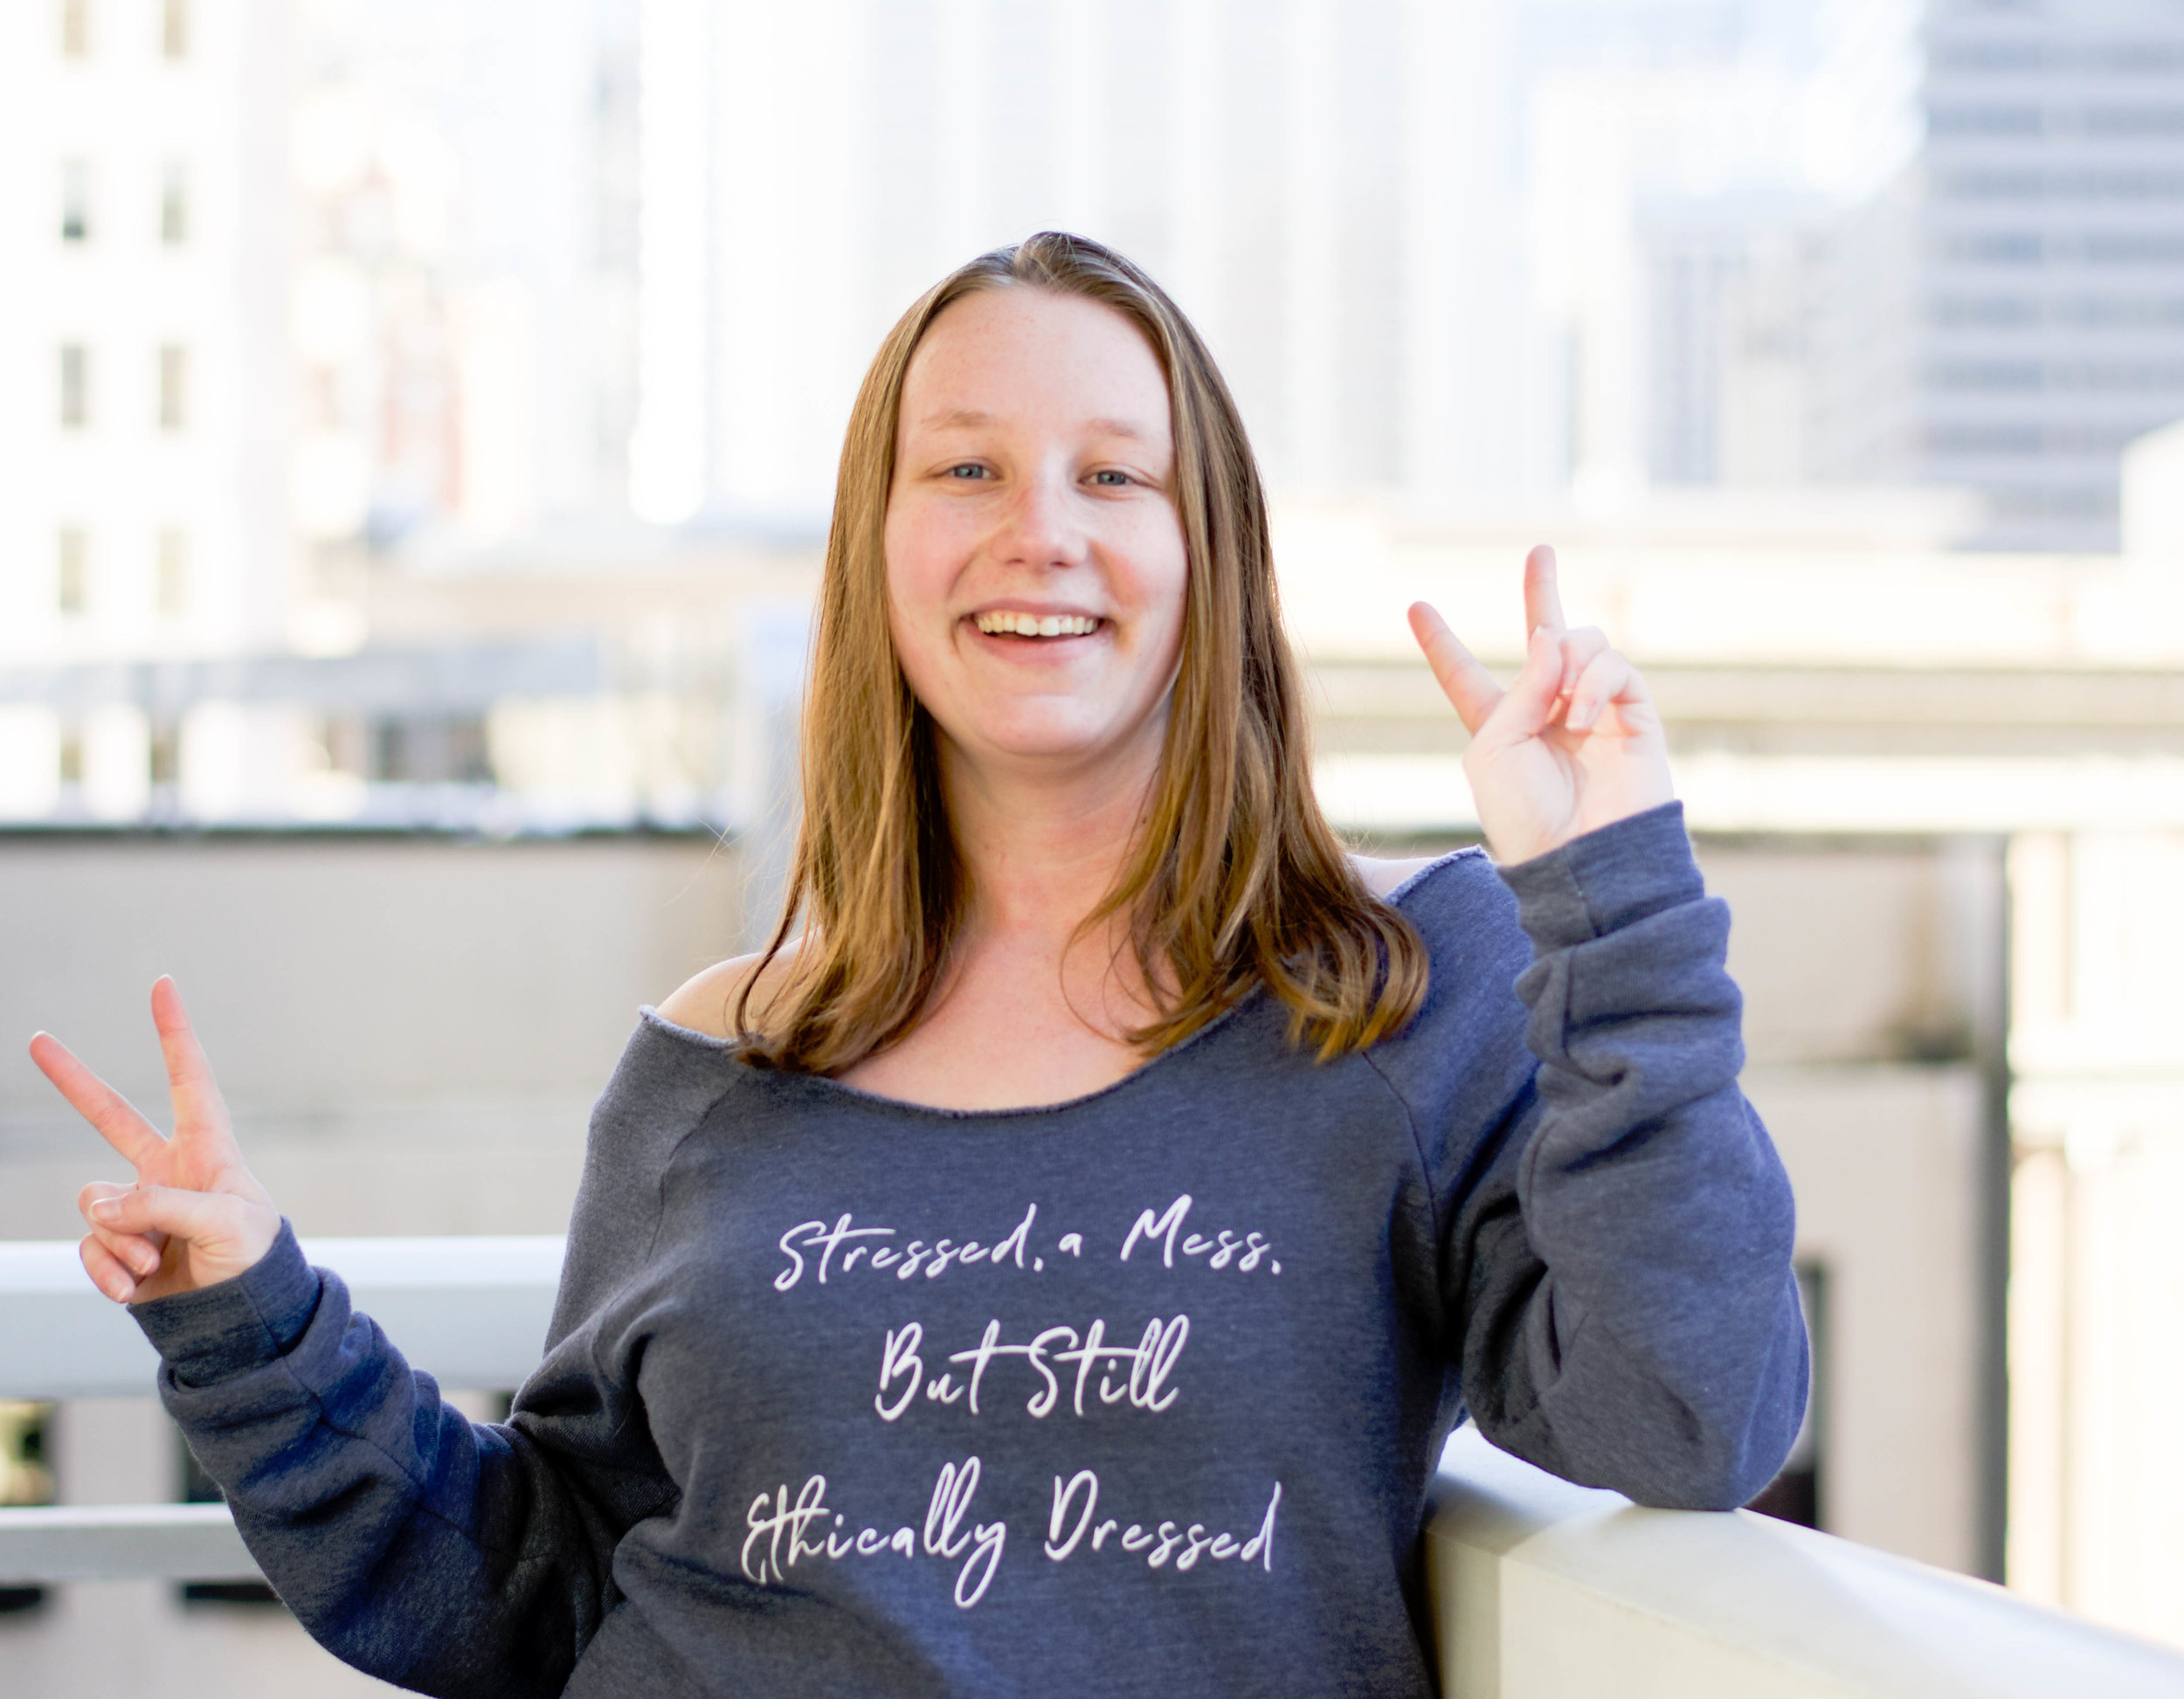 Ethically dressed in  Give a Damn Good's Stressed a Mess sweatshirt